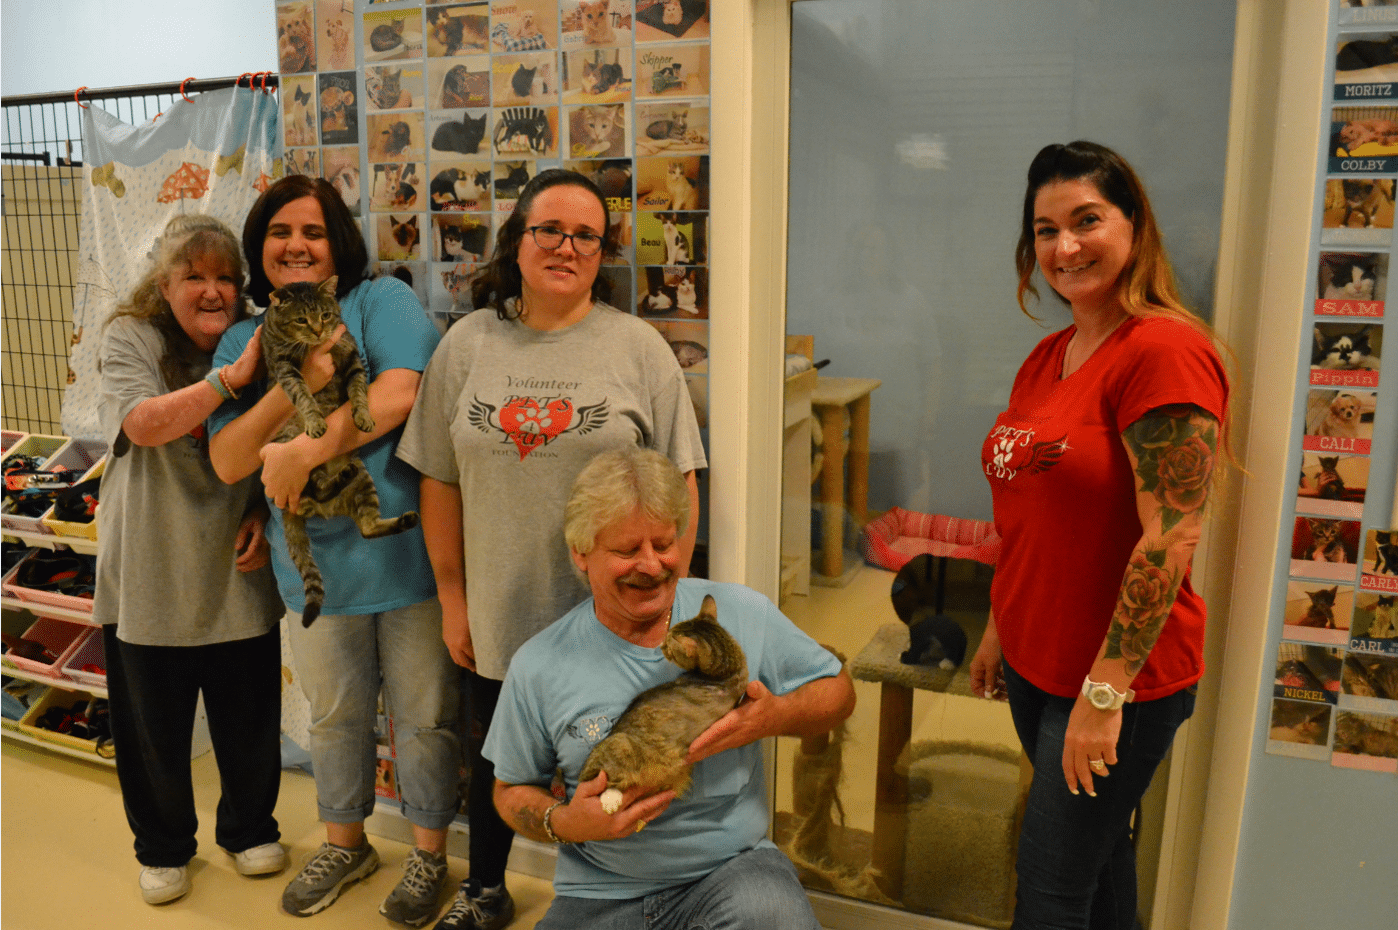 Community habilitation workers volunteer alongside the people they support at the Pets4Luv animal shelter.